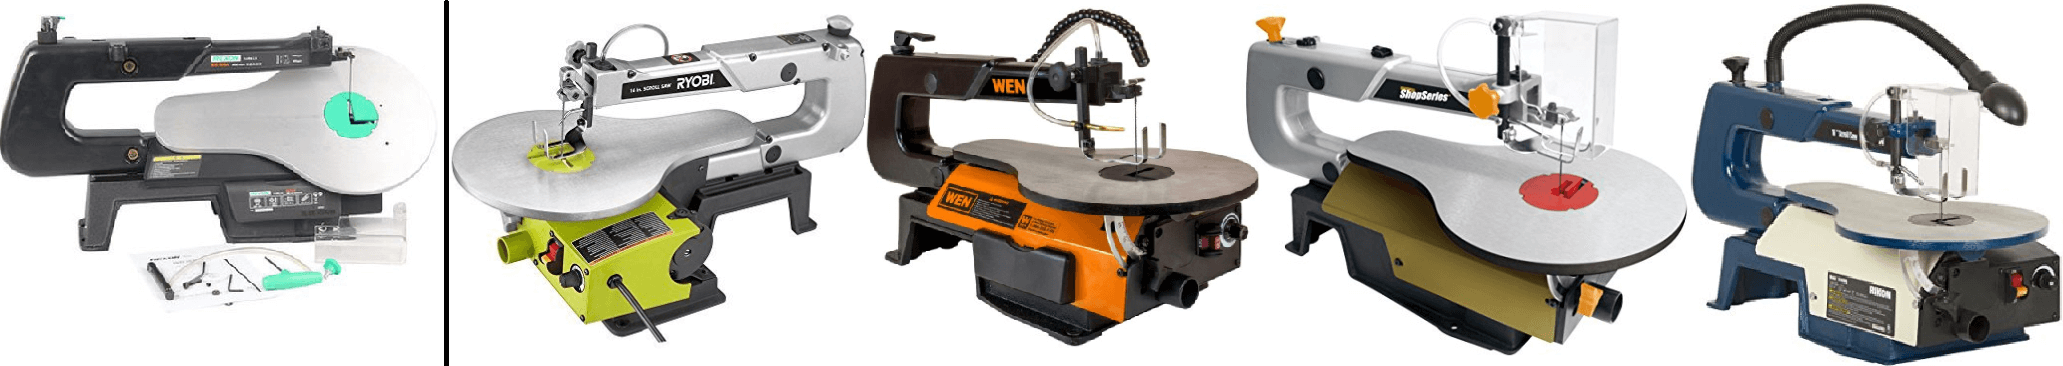 Review of Wen Tools Scroll Saw with visual comparison of Chinese-made Jinhua scroll saw machine to woodworking power tools sold by American companies Ryobi, Wen, Rockwell and Rikon.